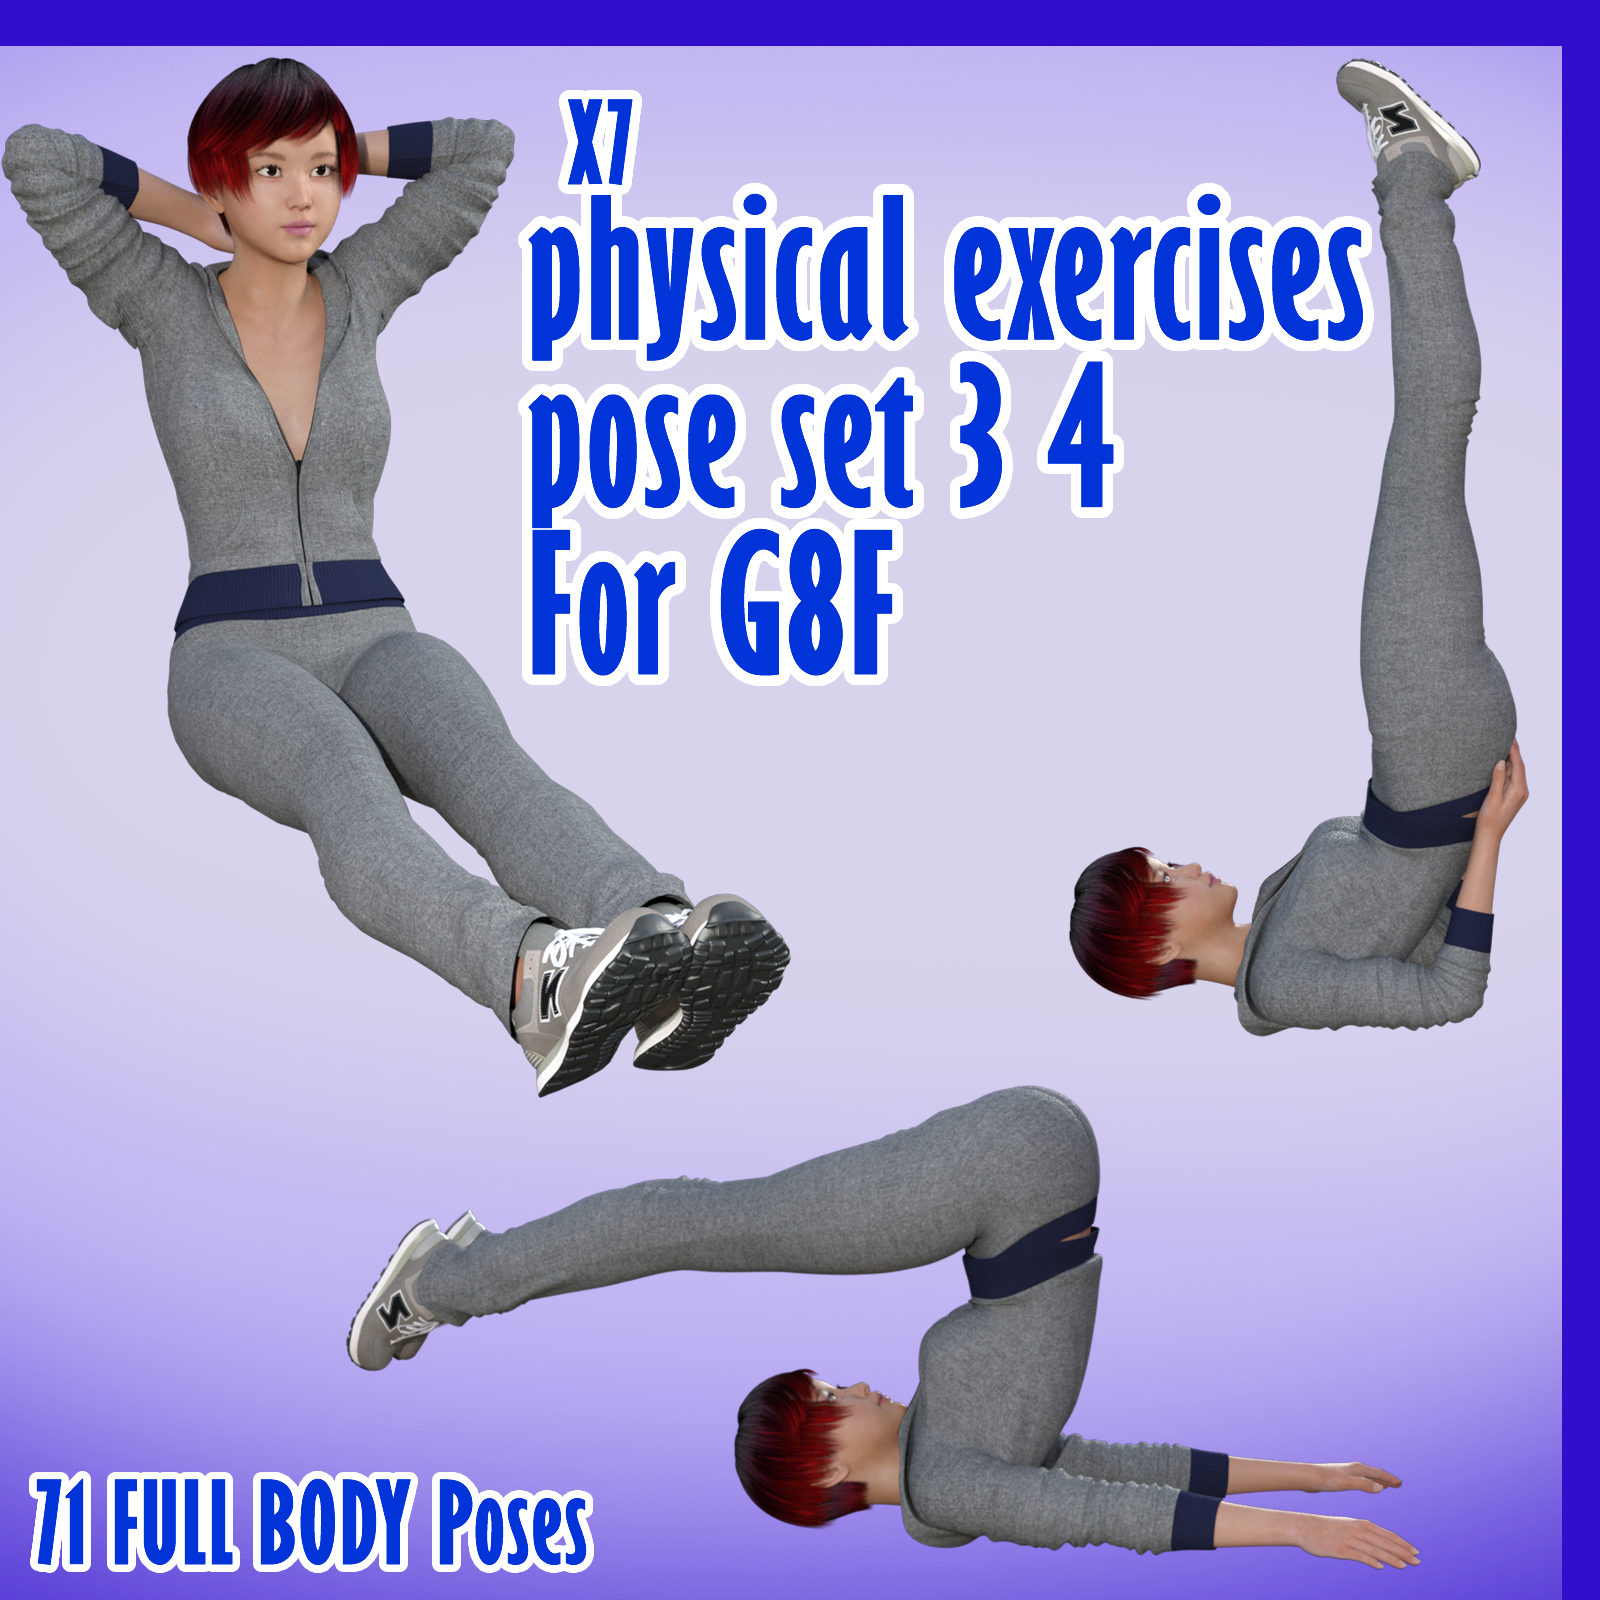 X7 physical exercises poses set 3 4 for G8F